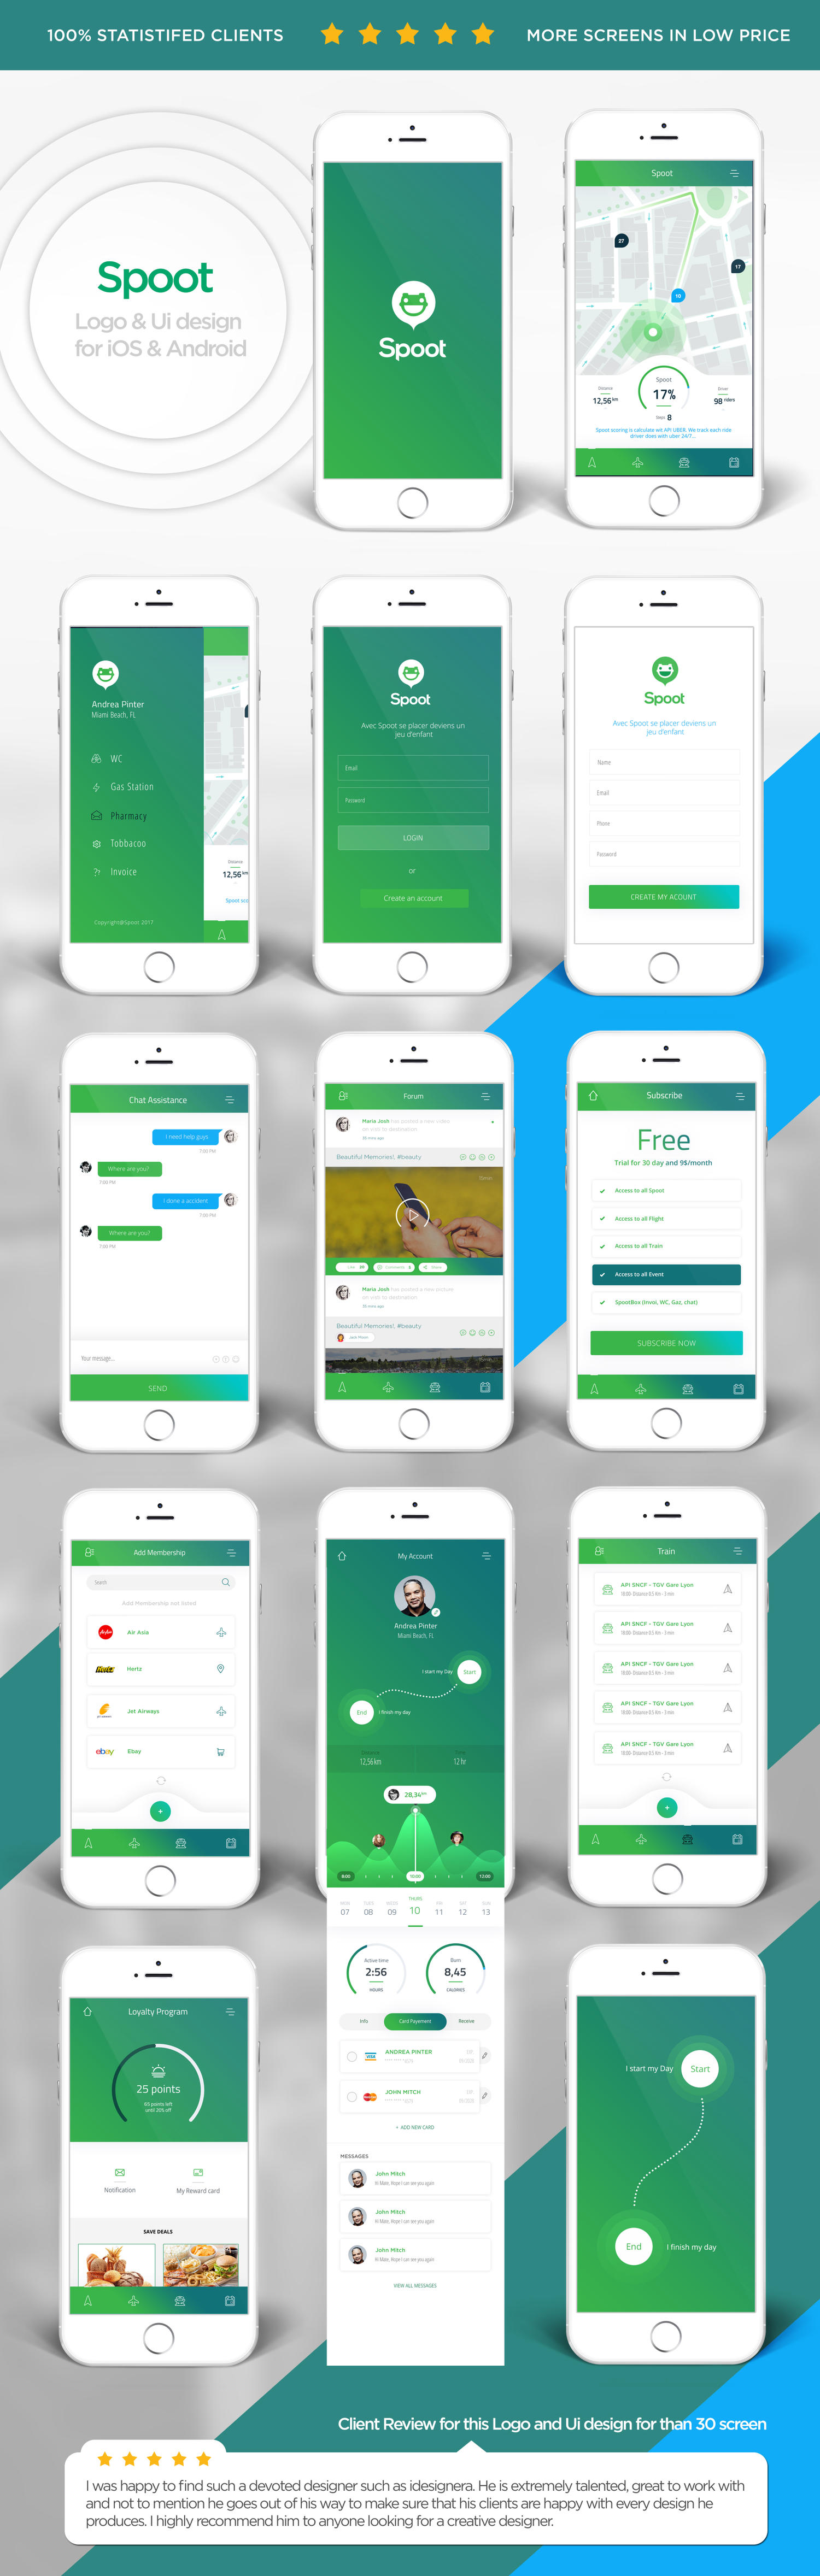 Mobile App interface for iOS and Android design by idesignera - 110039